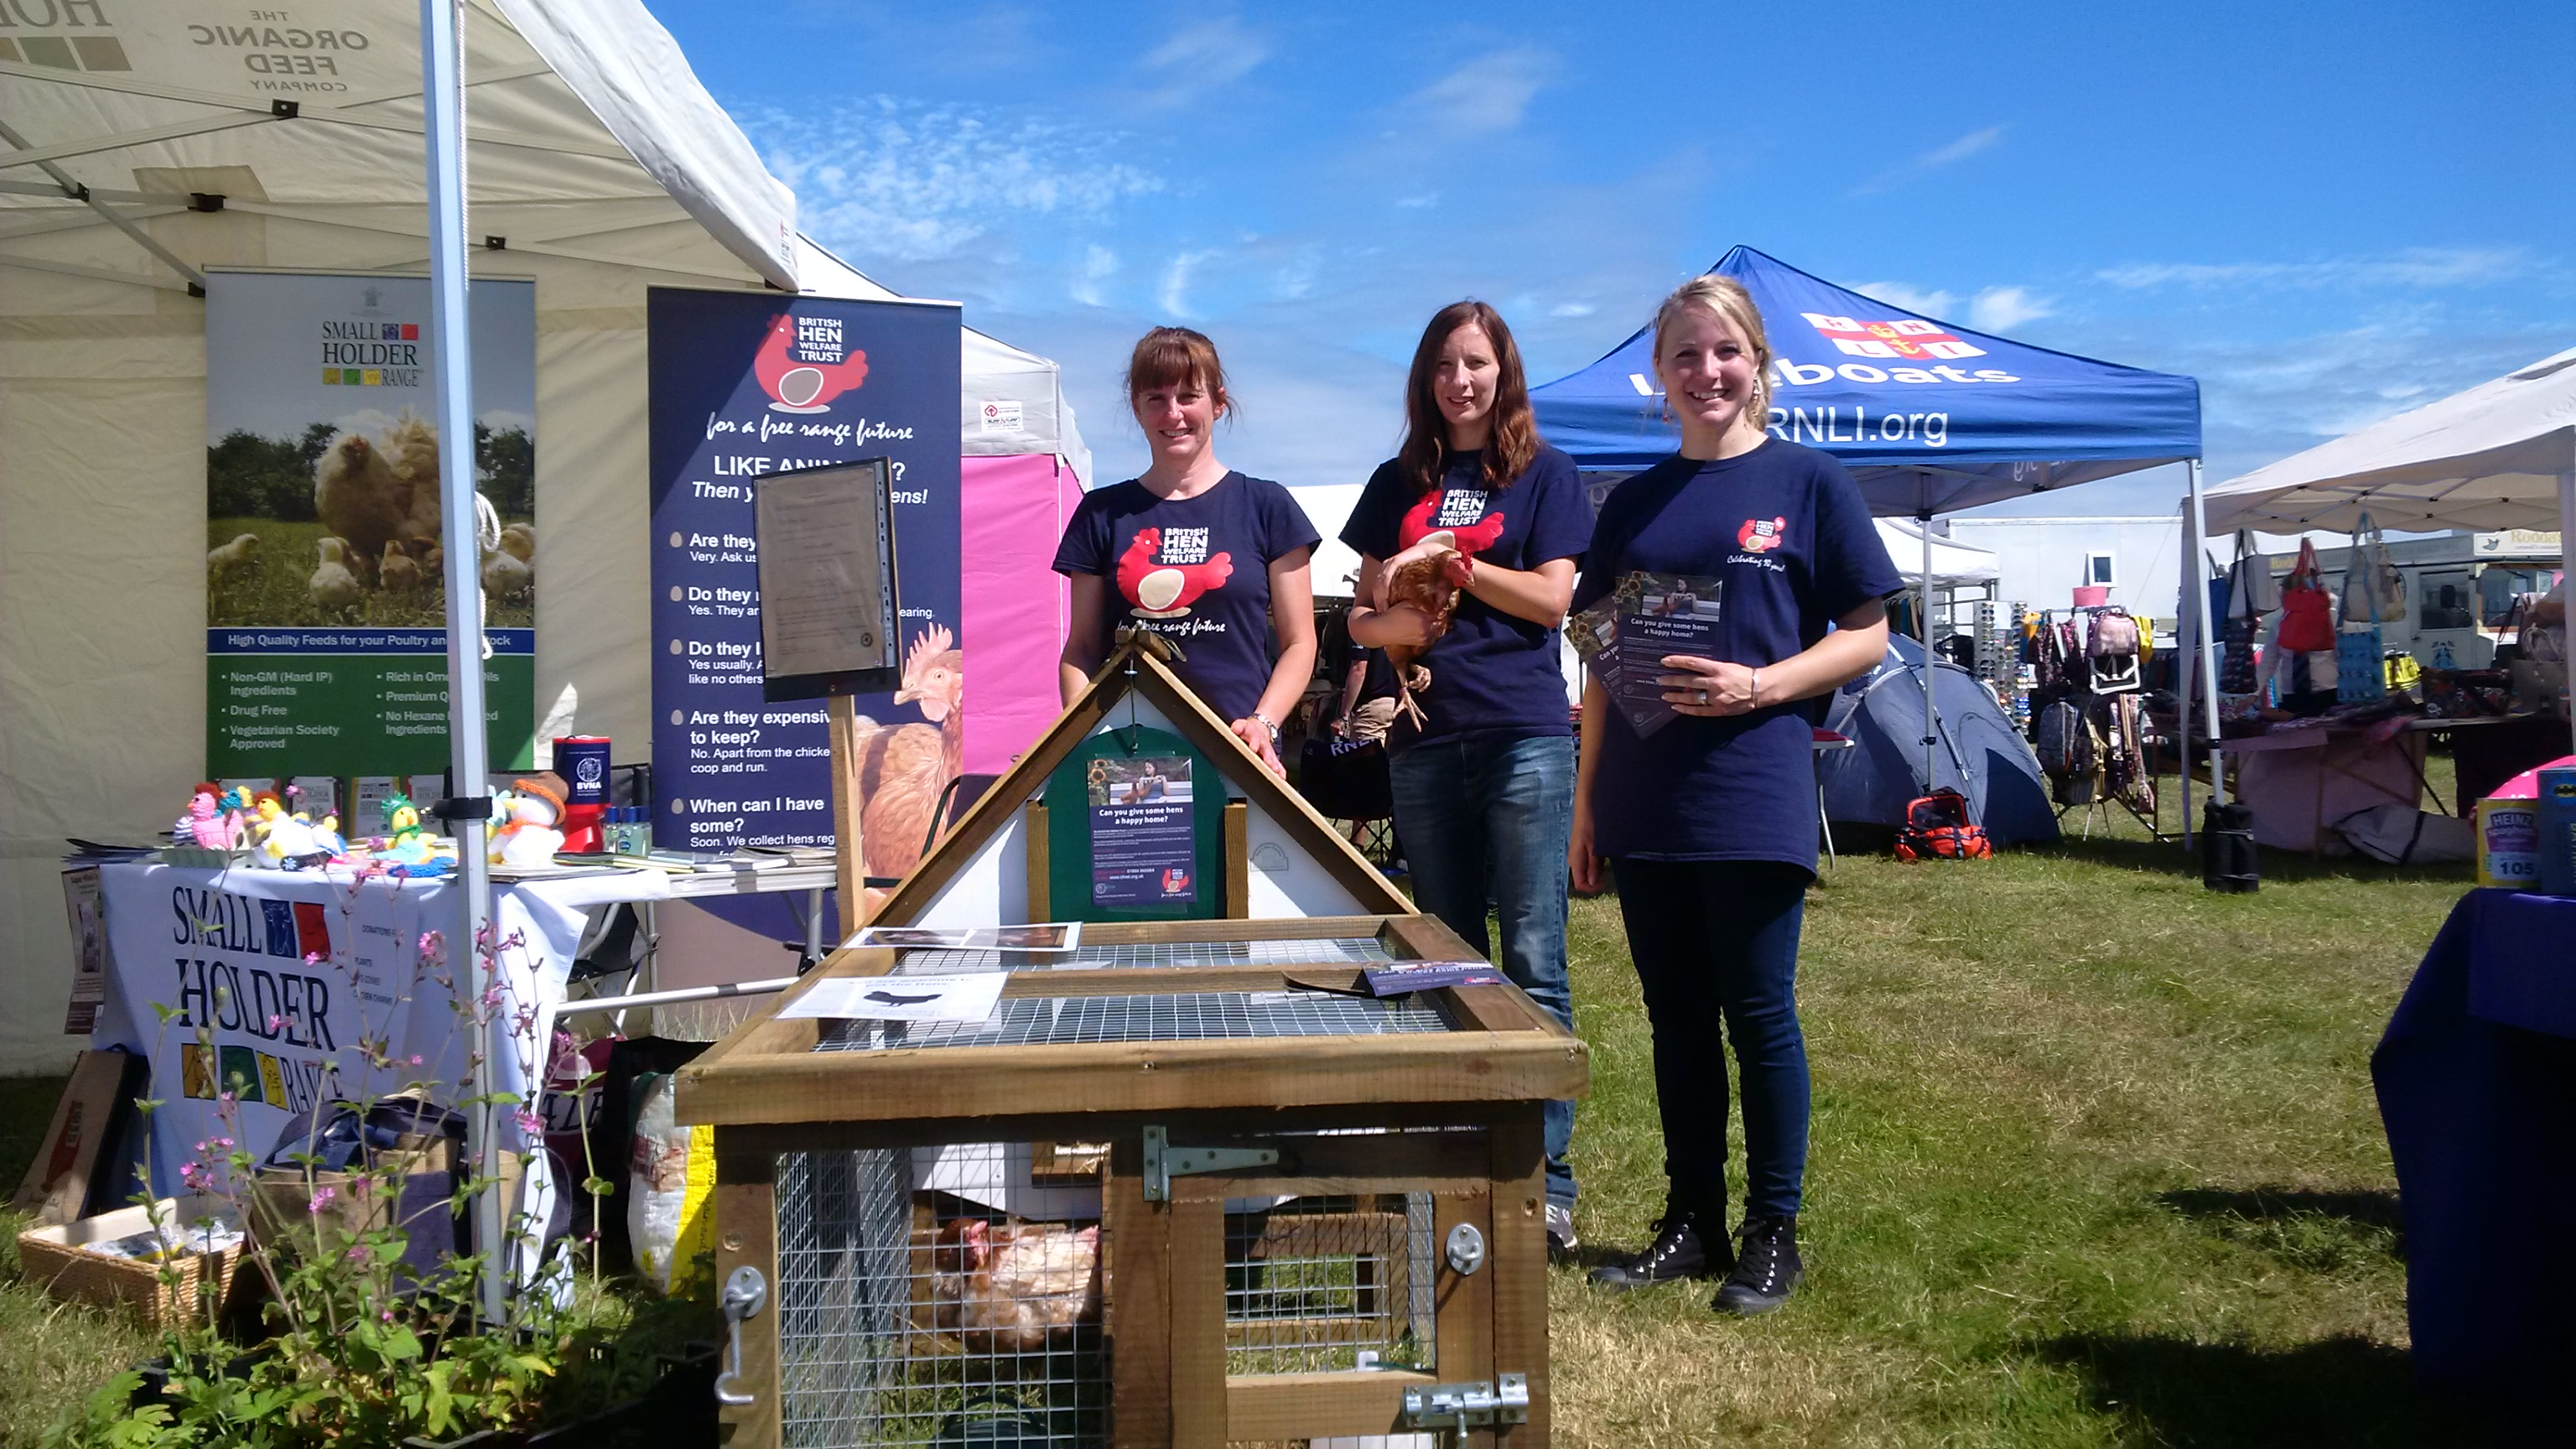 Camborne Agricultural Show (16 July 2016)